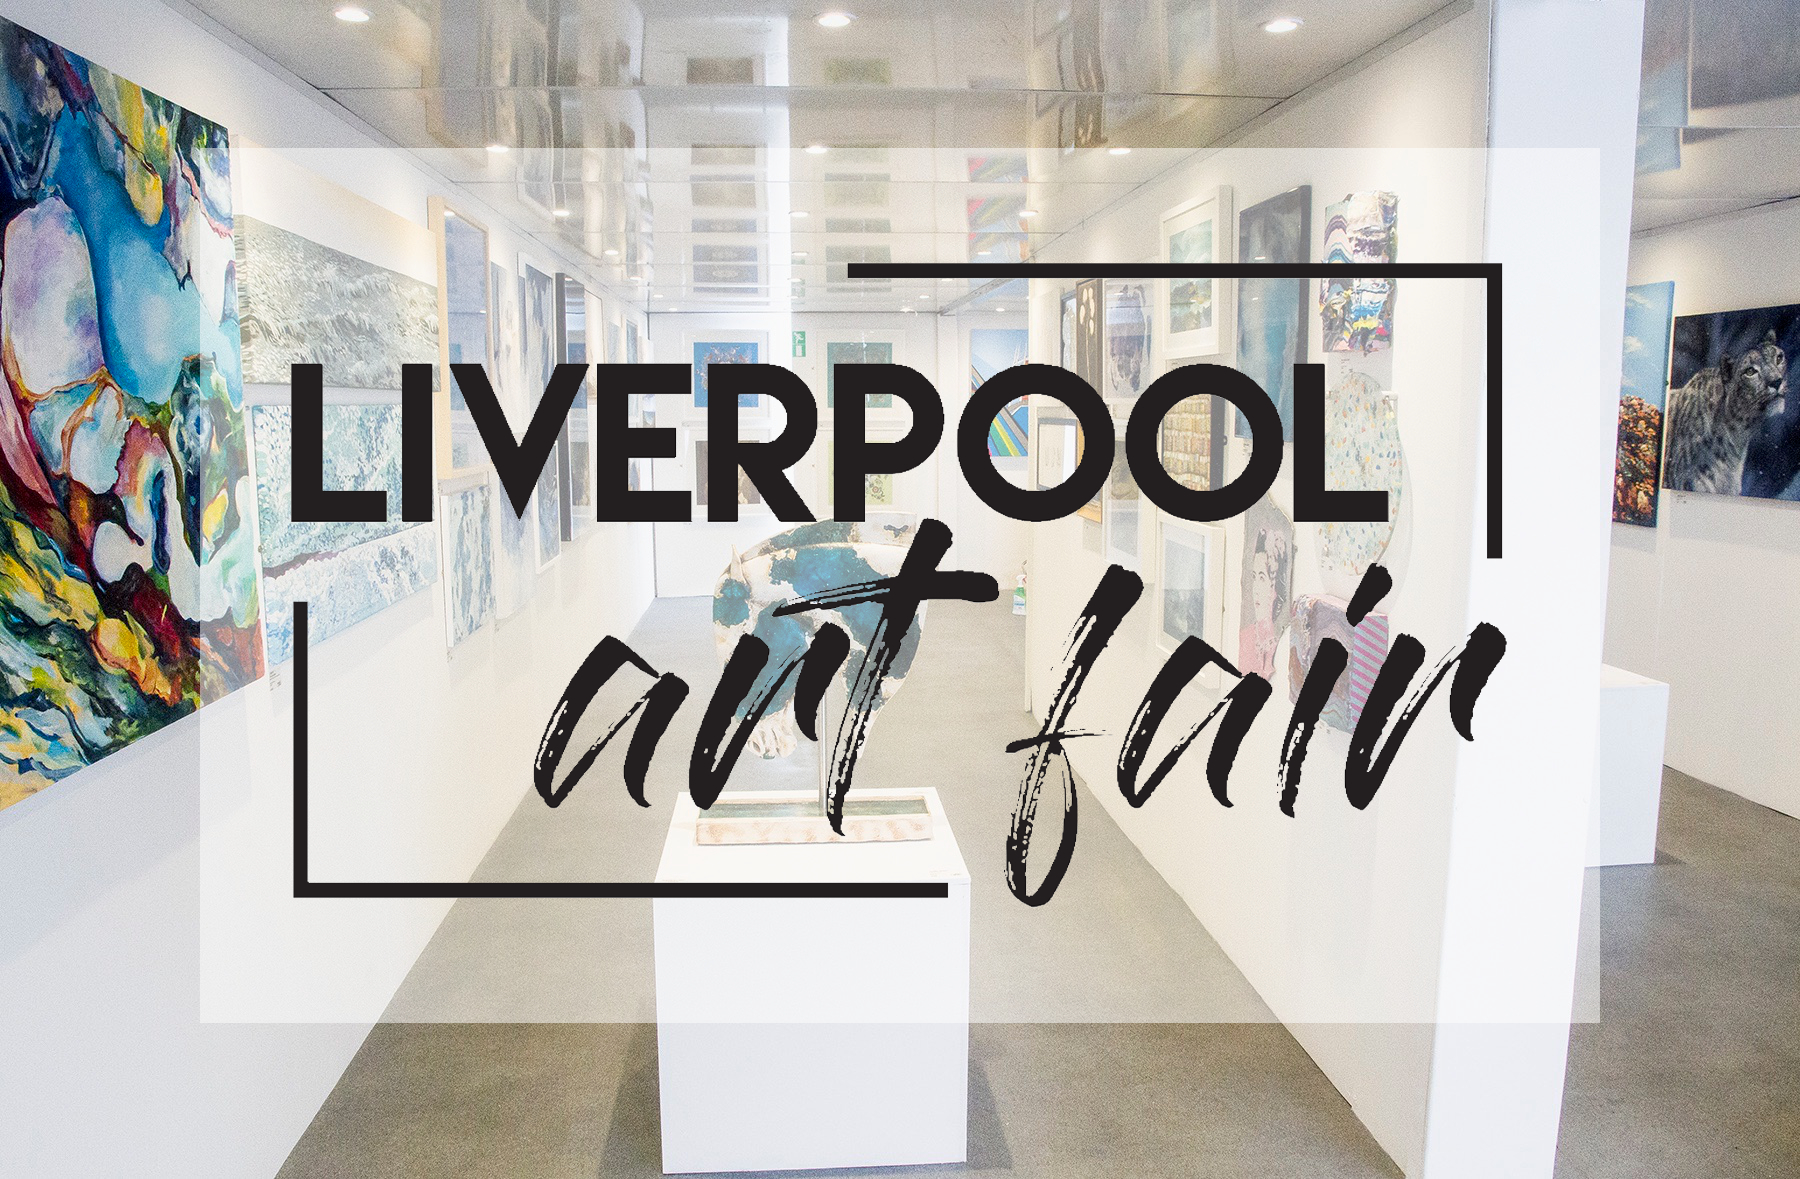 Liverpool Art Fair